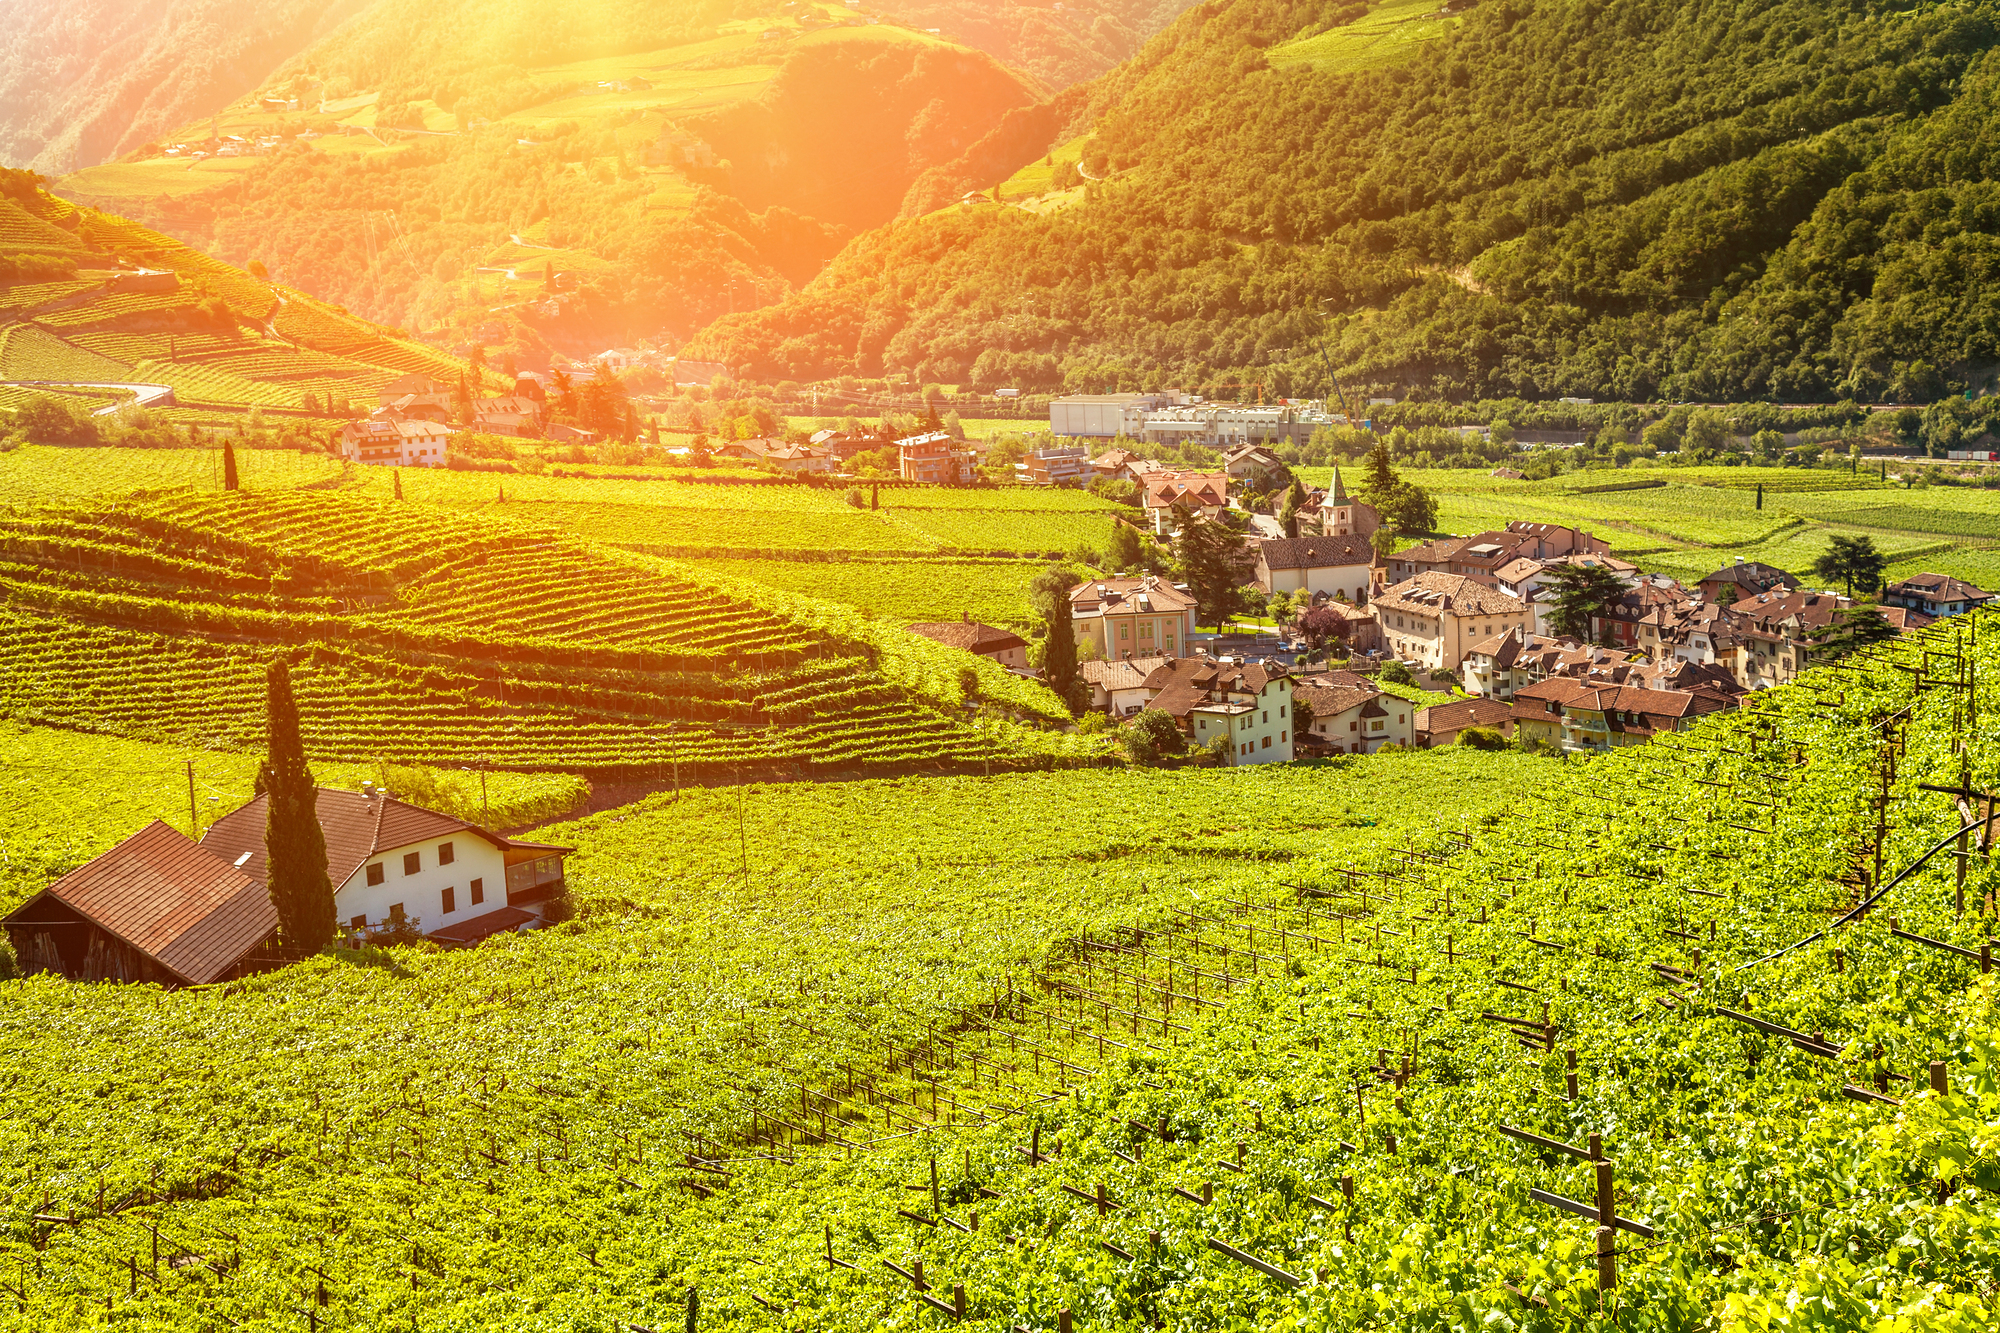 Beautiful sunset view over a vineyard in Bolzano Italy